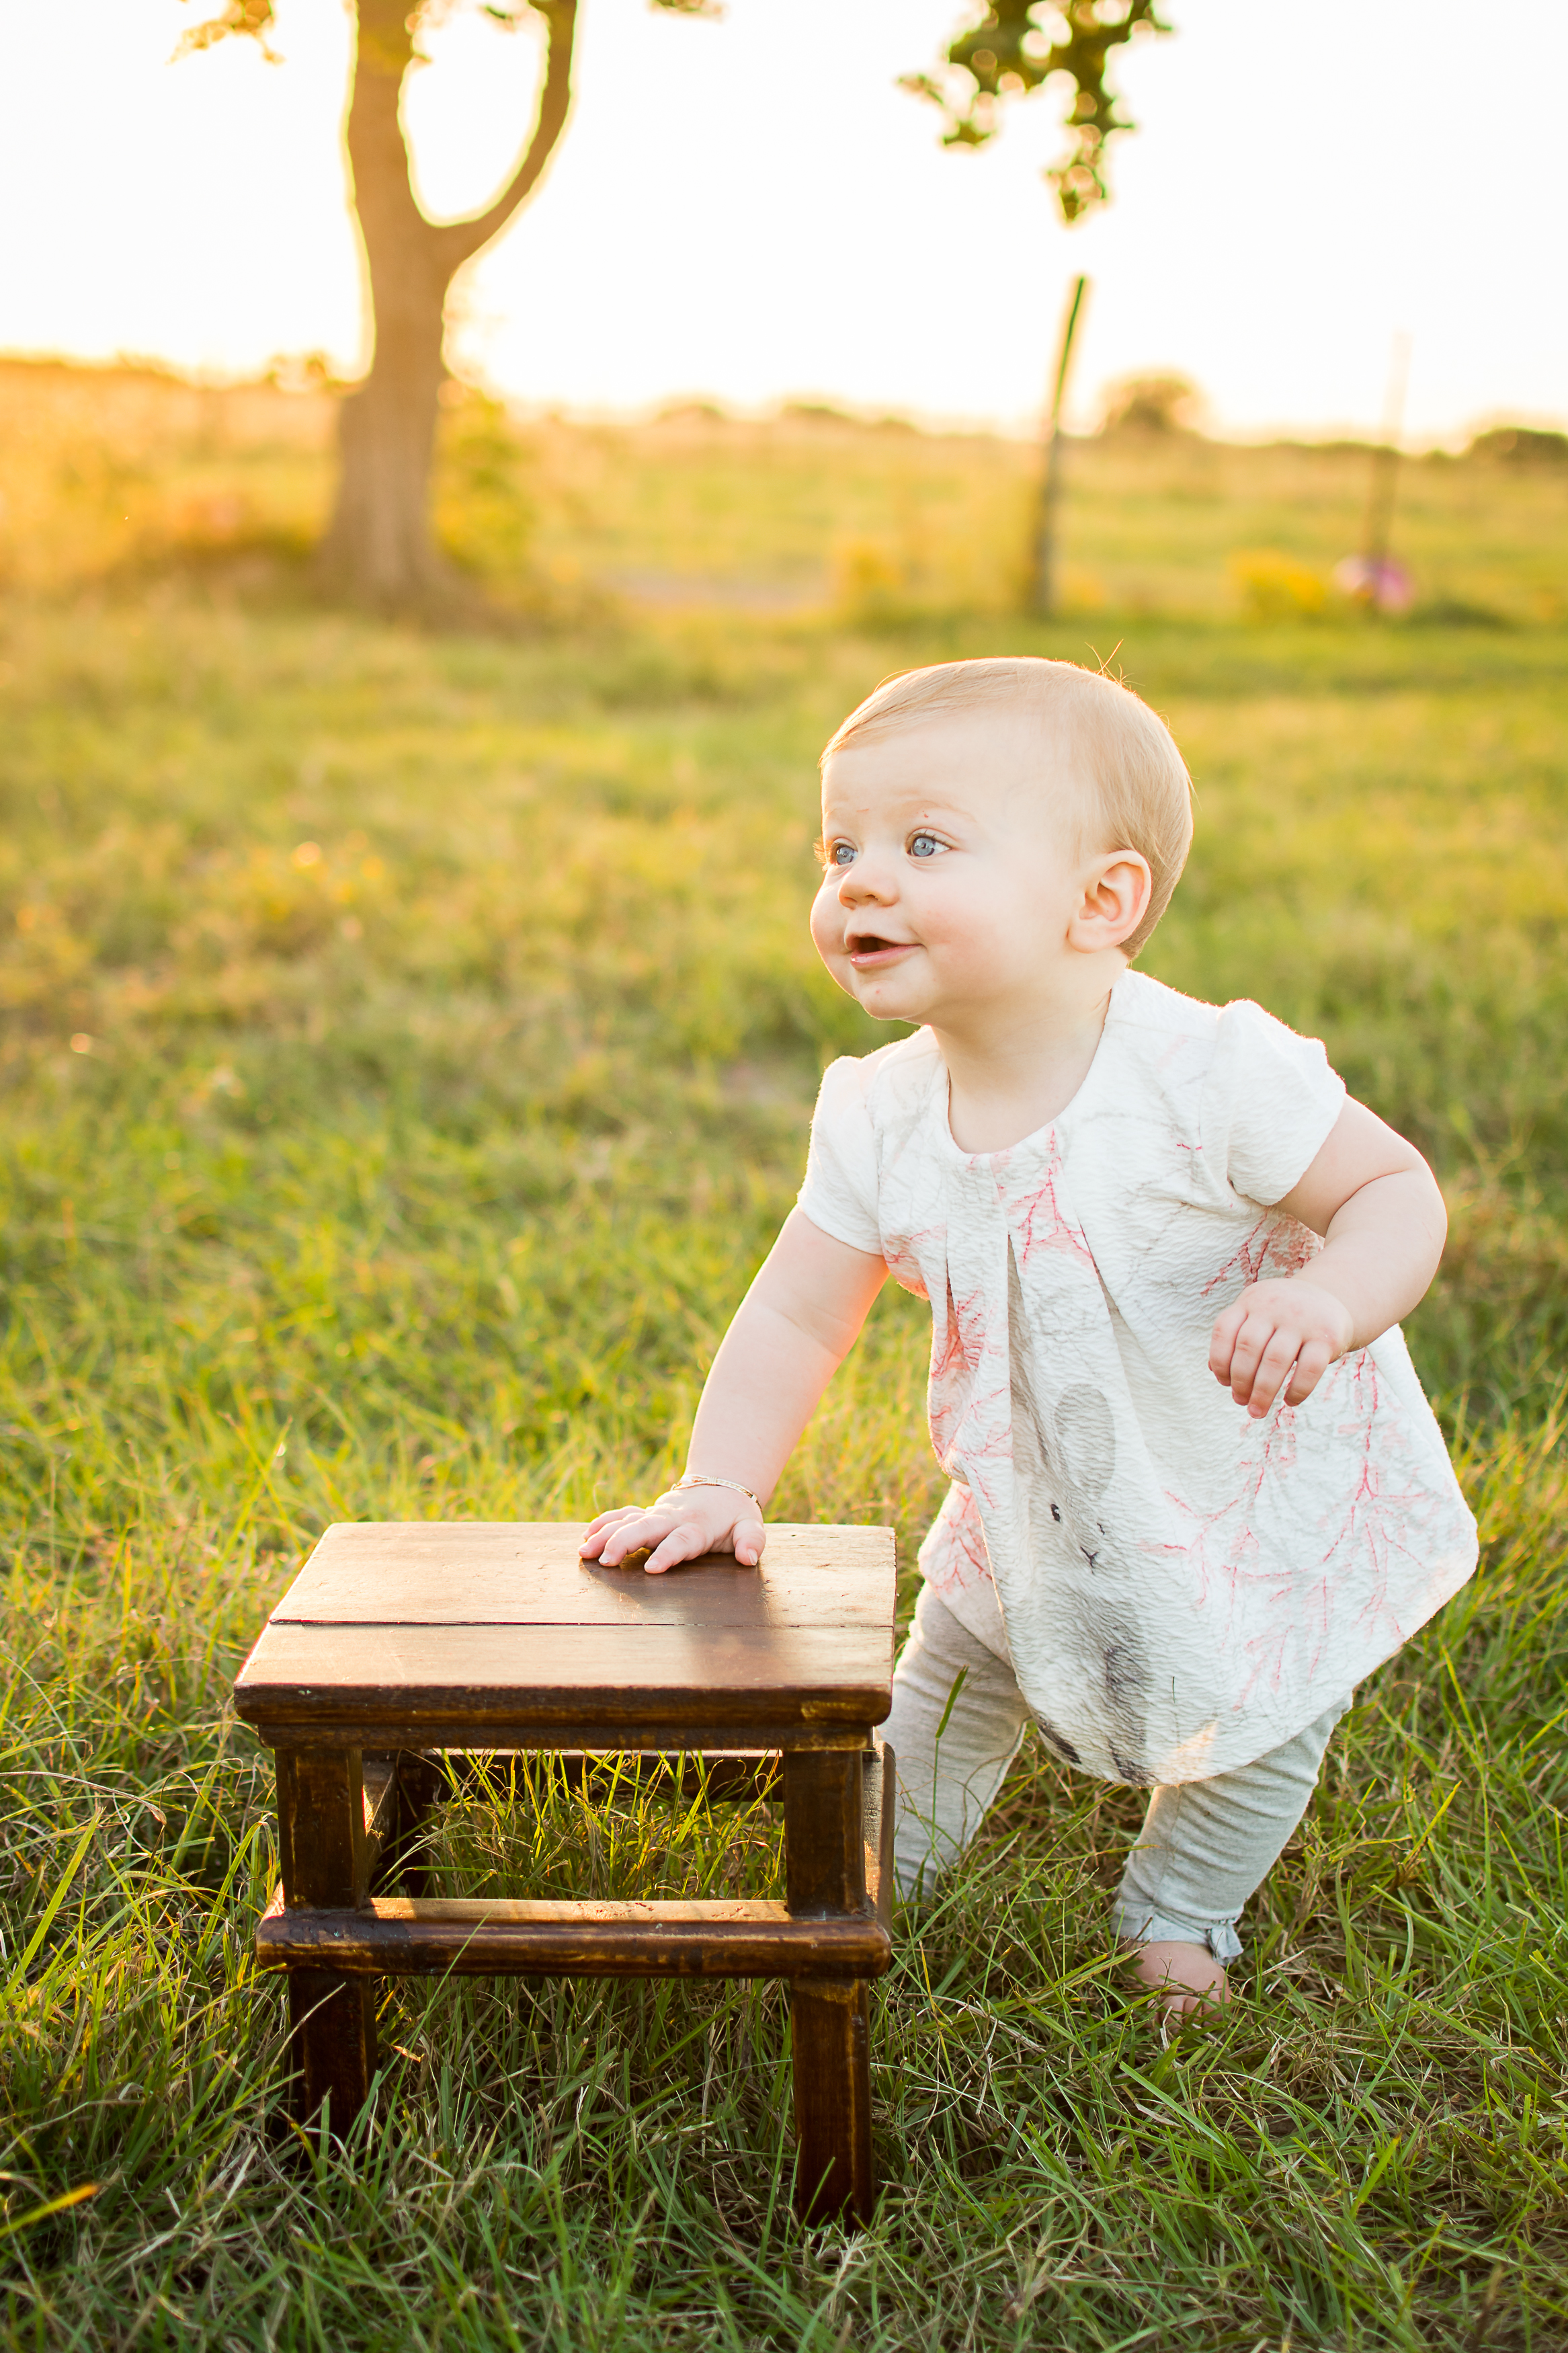 Photograph of a toddler girl with blue eyes in a grass field by Sealy, Texas family photographer Kristen Richards